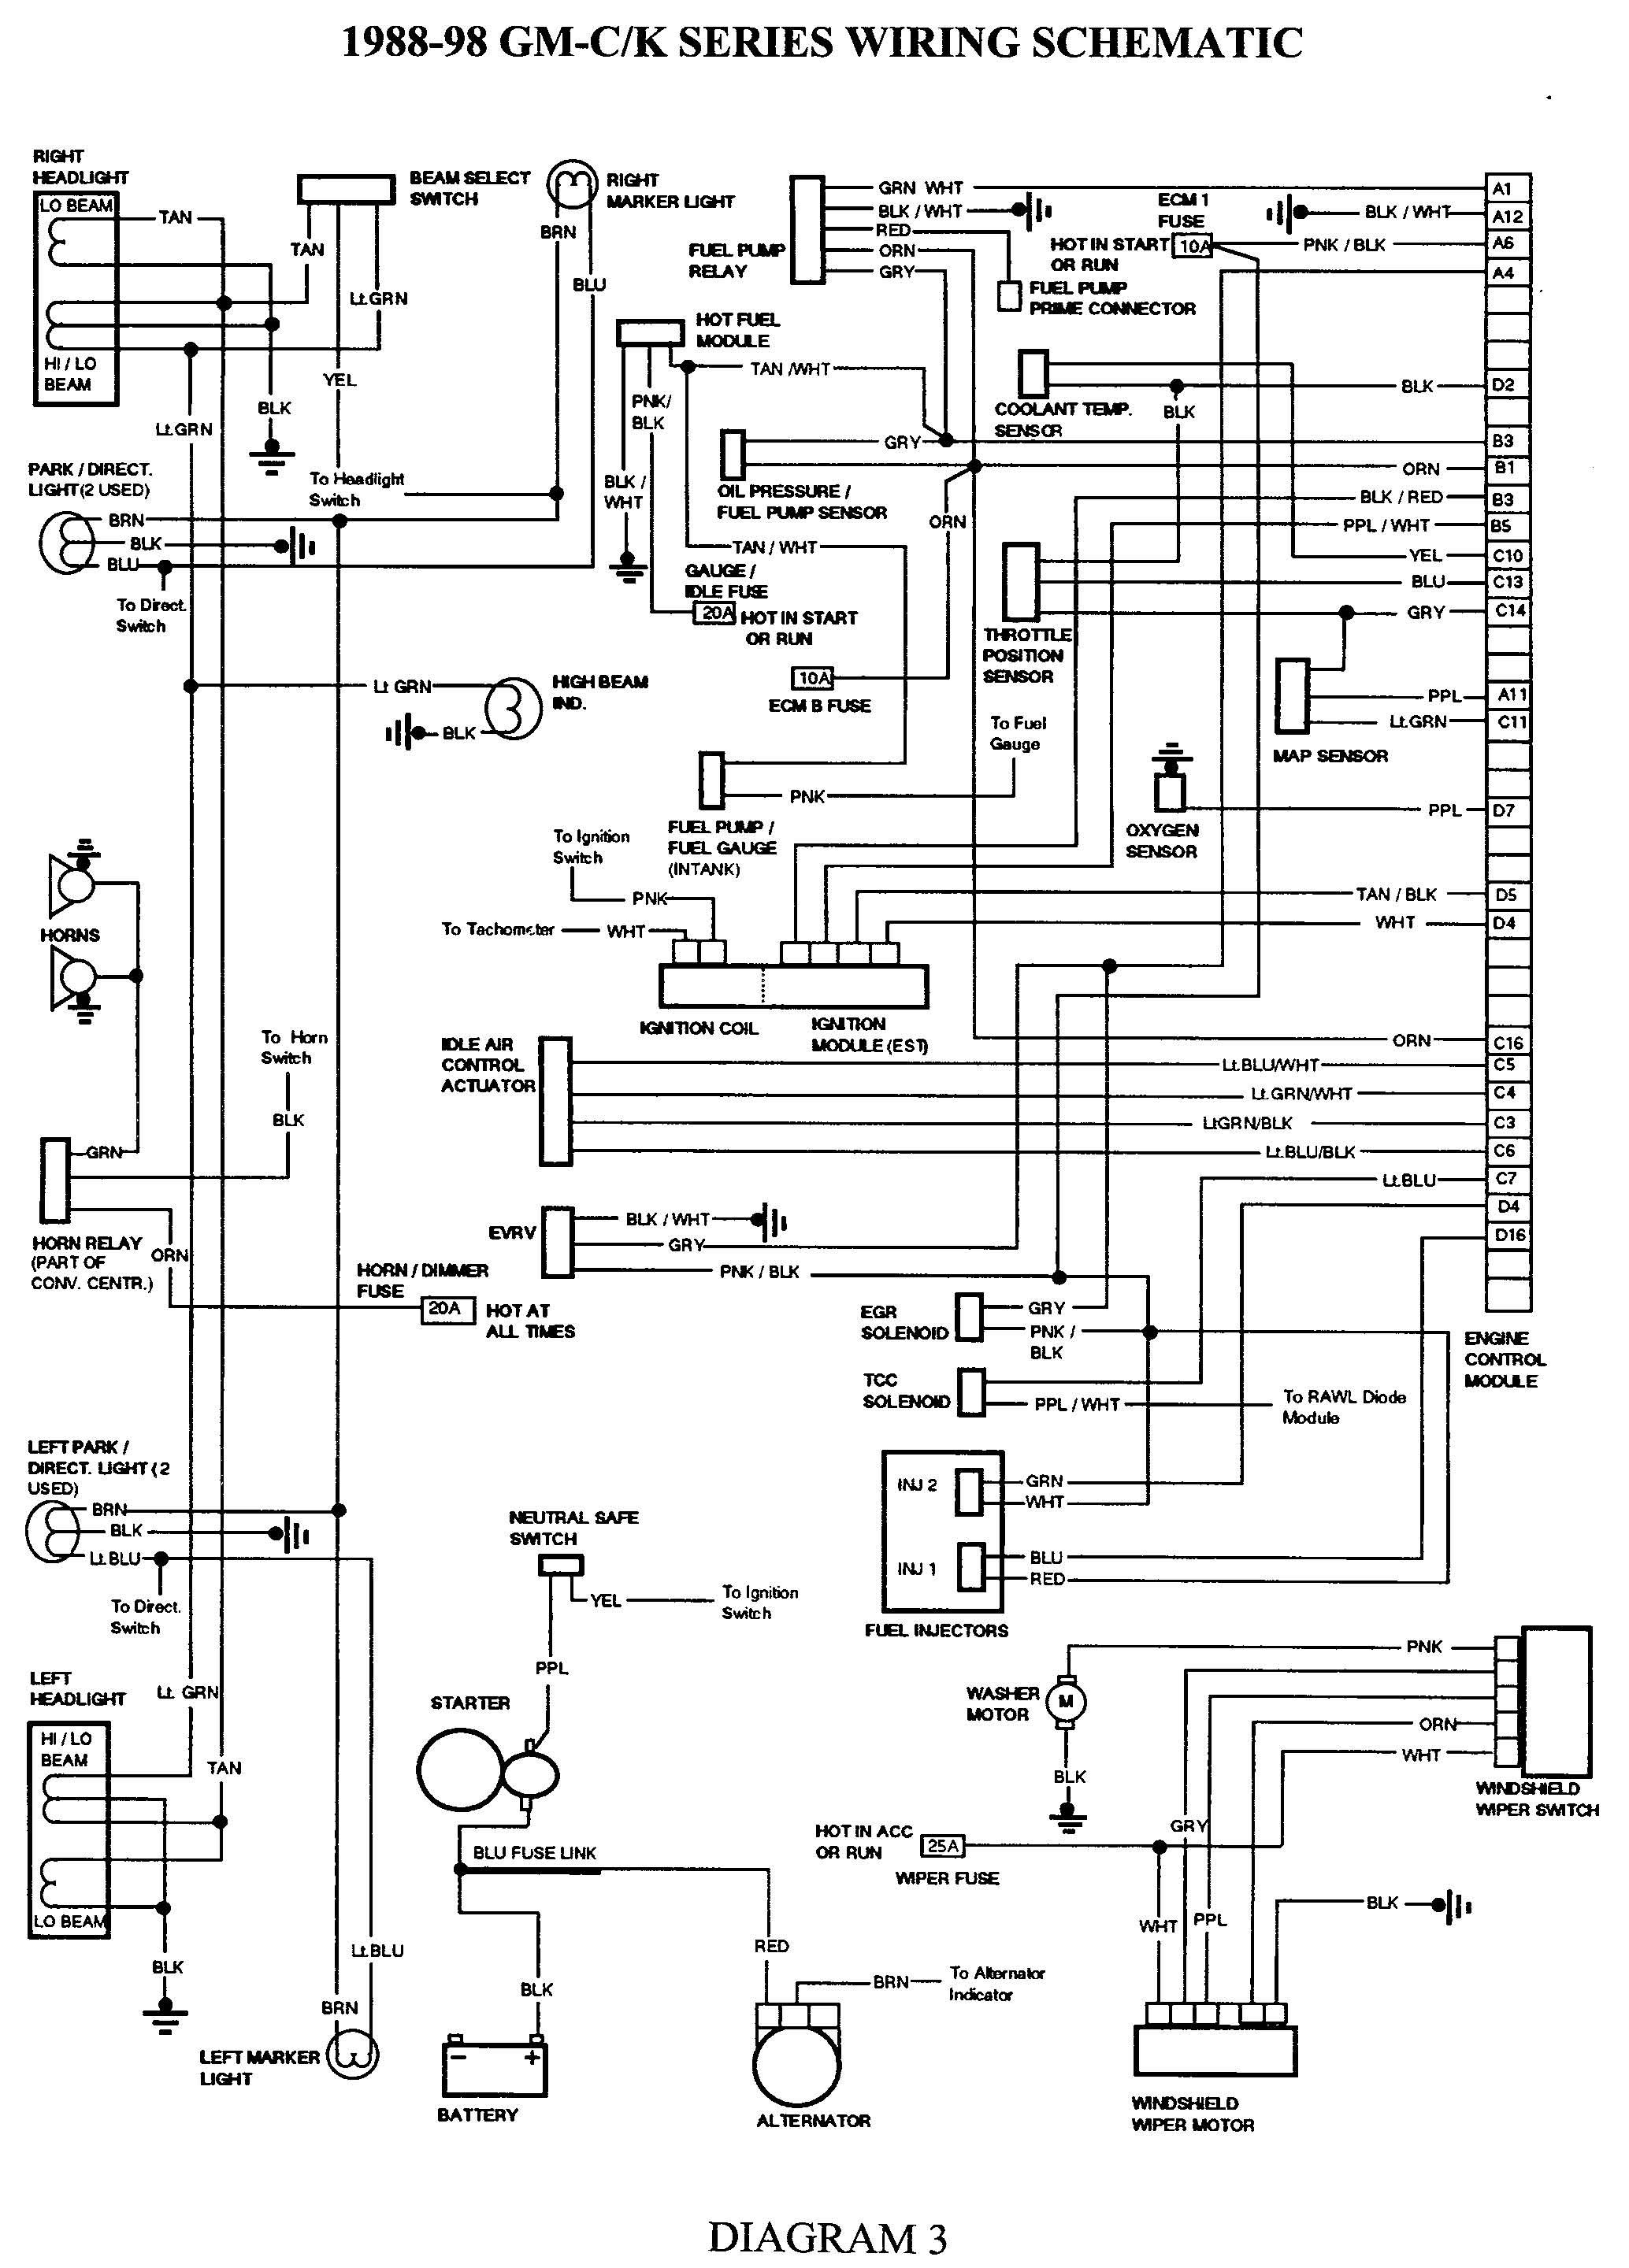 b2f2e5dbdc07dada83ef514f6d4ce3d4 gmc truck wiring diagrams on gm wiring harness diagram 88 98 kc chevrolet wiring harness at gsmportal.co